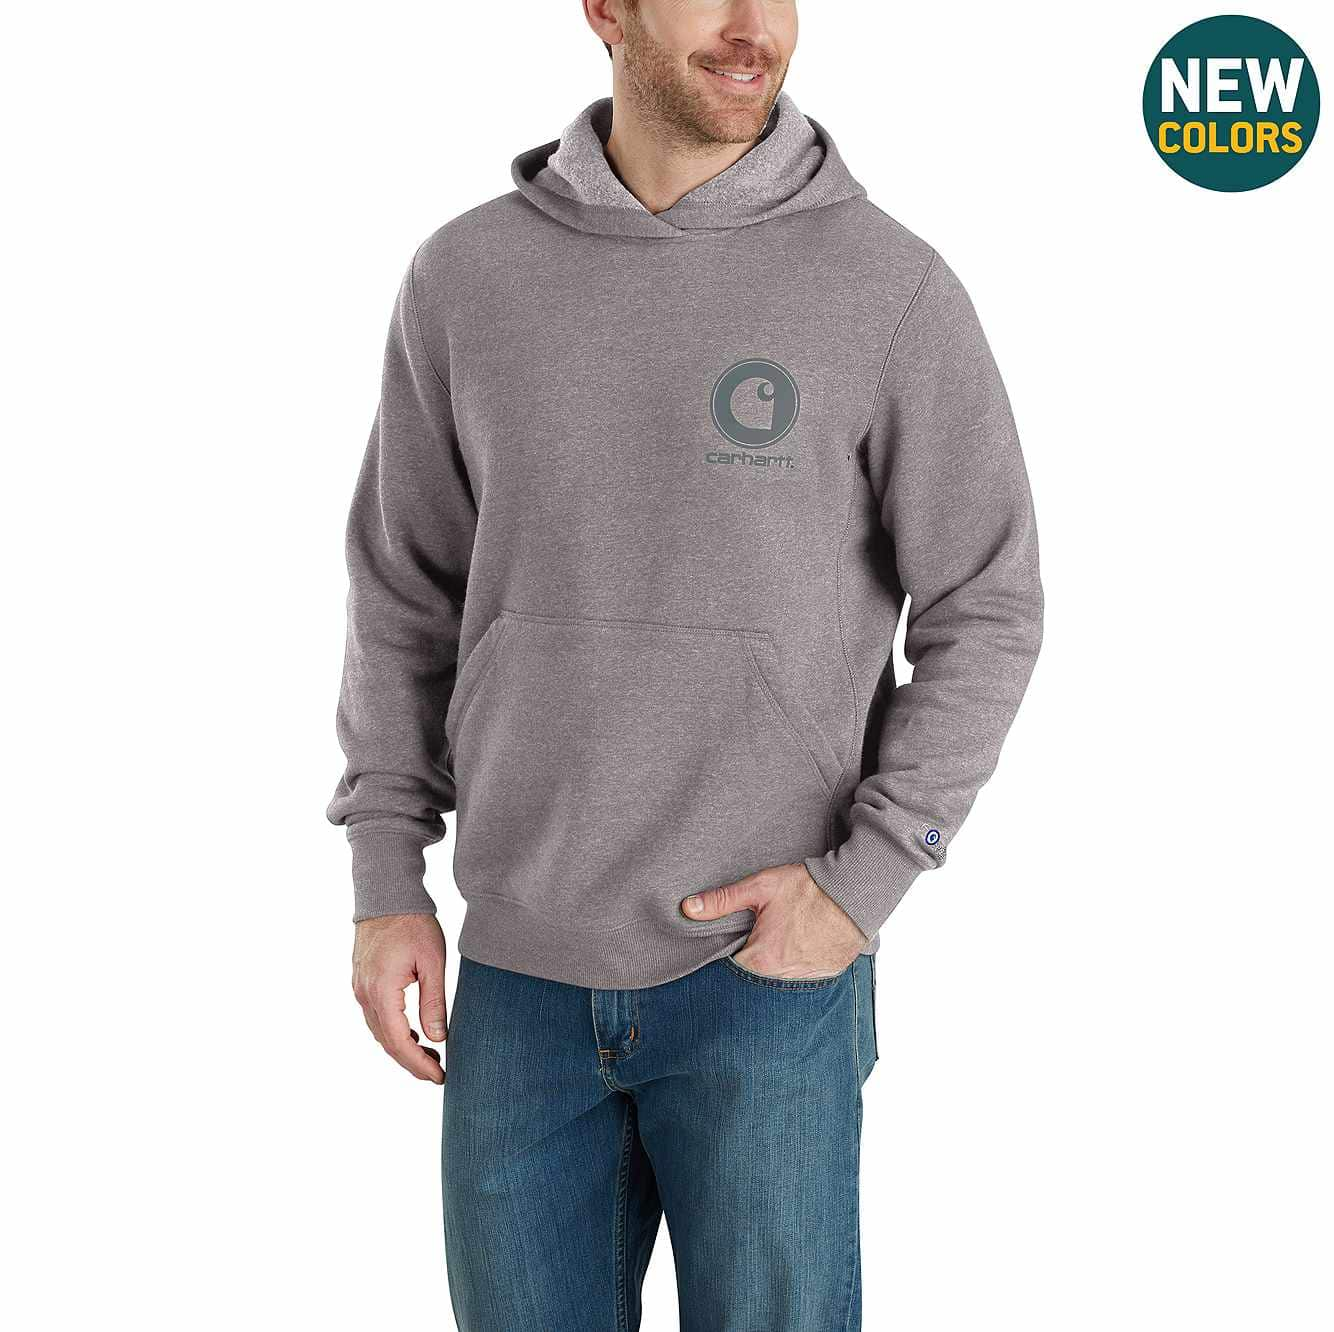 Picture of Force® Delmont Graphic Hooded Sweatshirt in Asphalt Heather/Gray